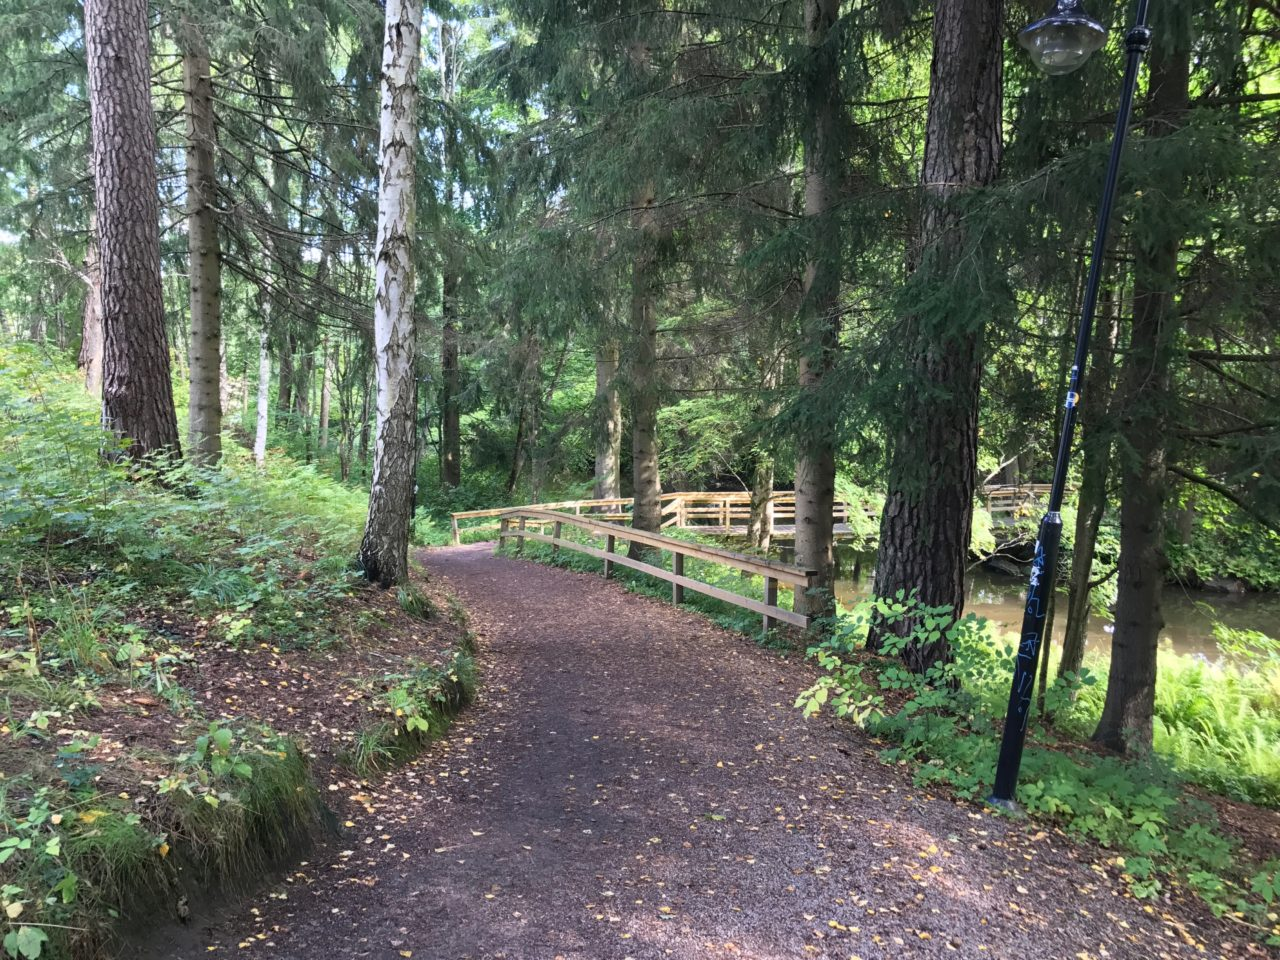 Forest Pathway With Fence And Trees